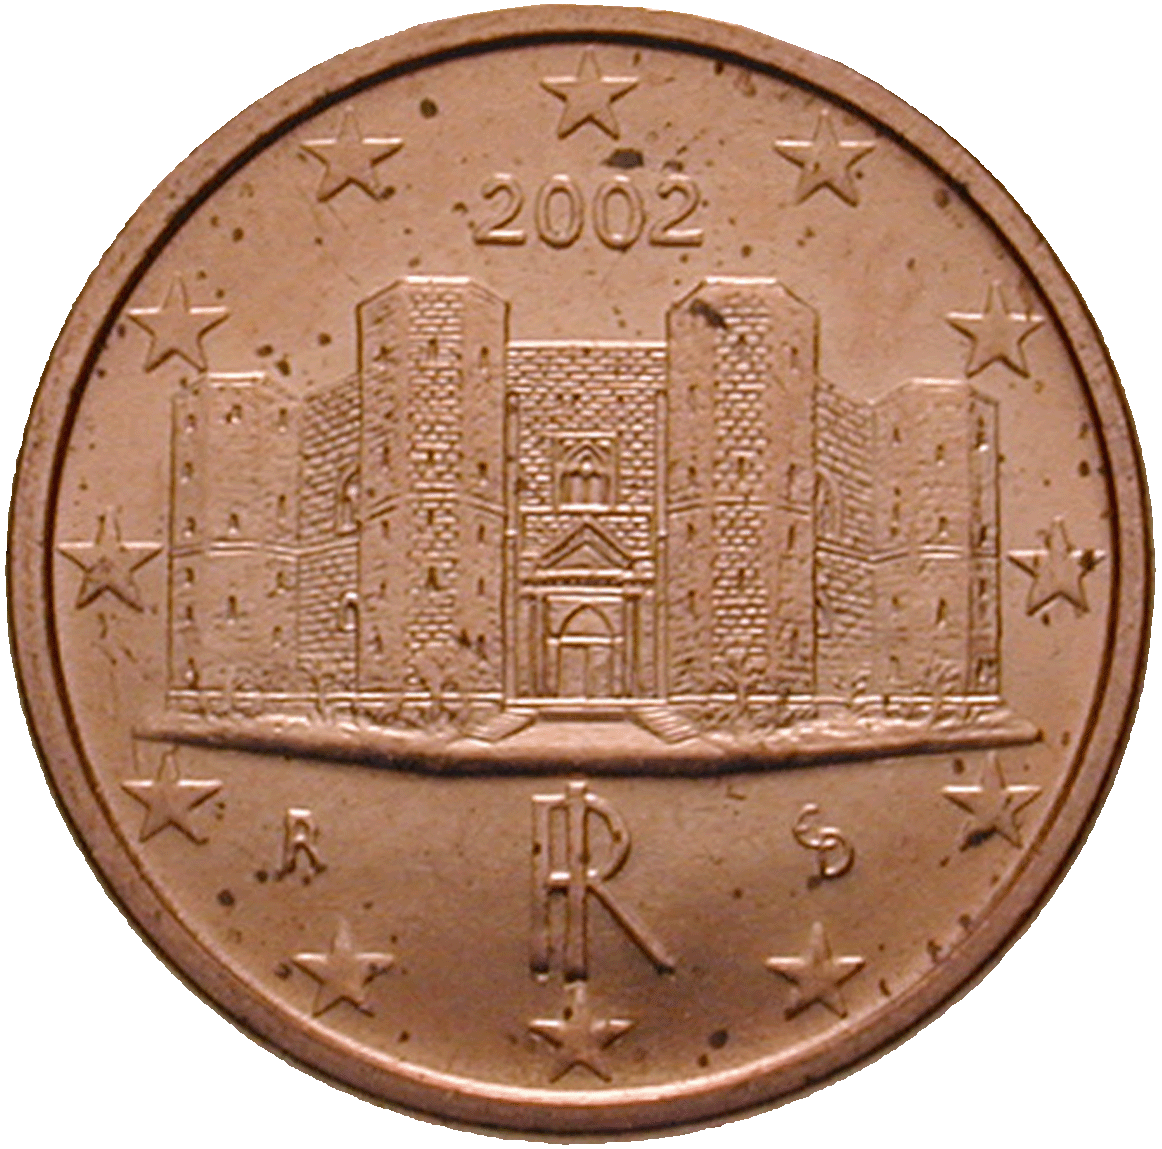 Republic of Italy, 1 Euro Cent 2002 (obverse)